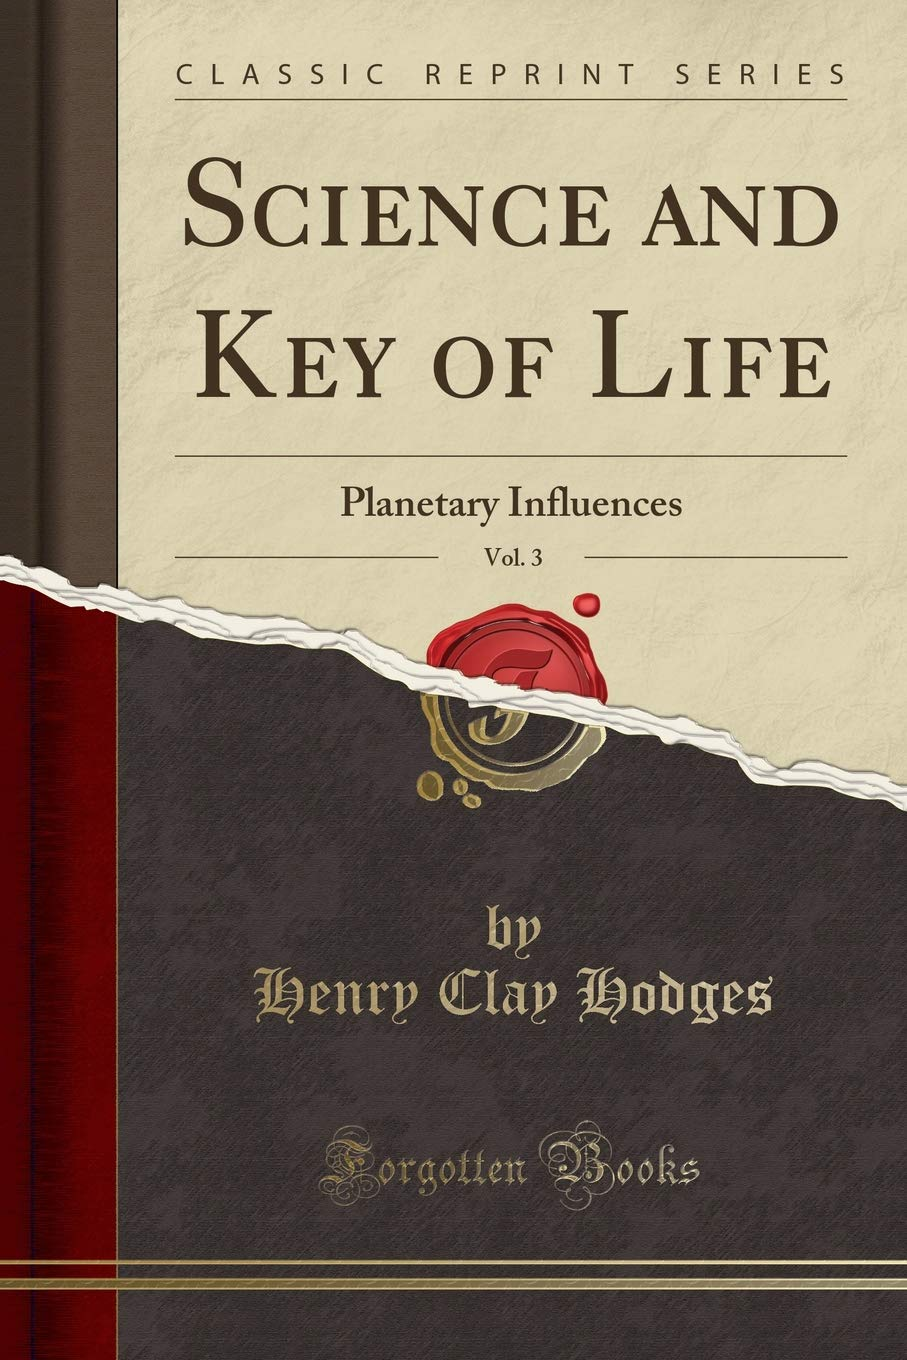 Science and Key of Life, Vol. 3: Planetary Influences (Classic Reprint) ebook